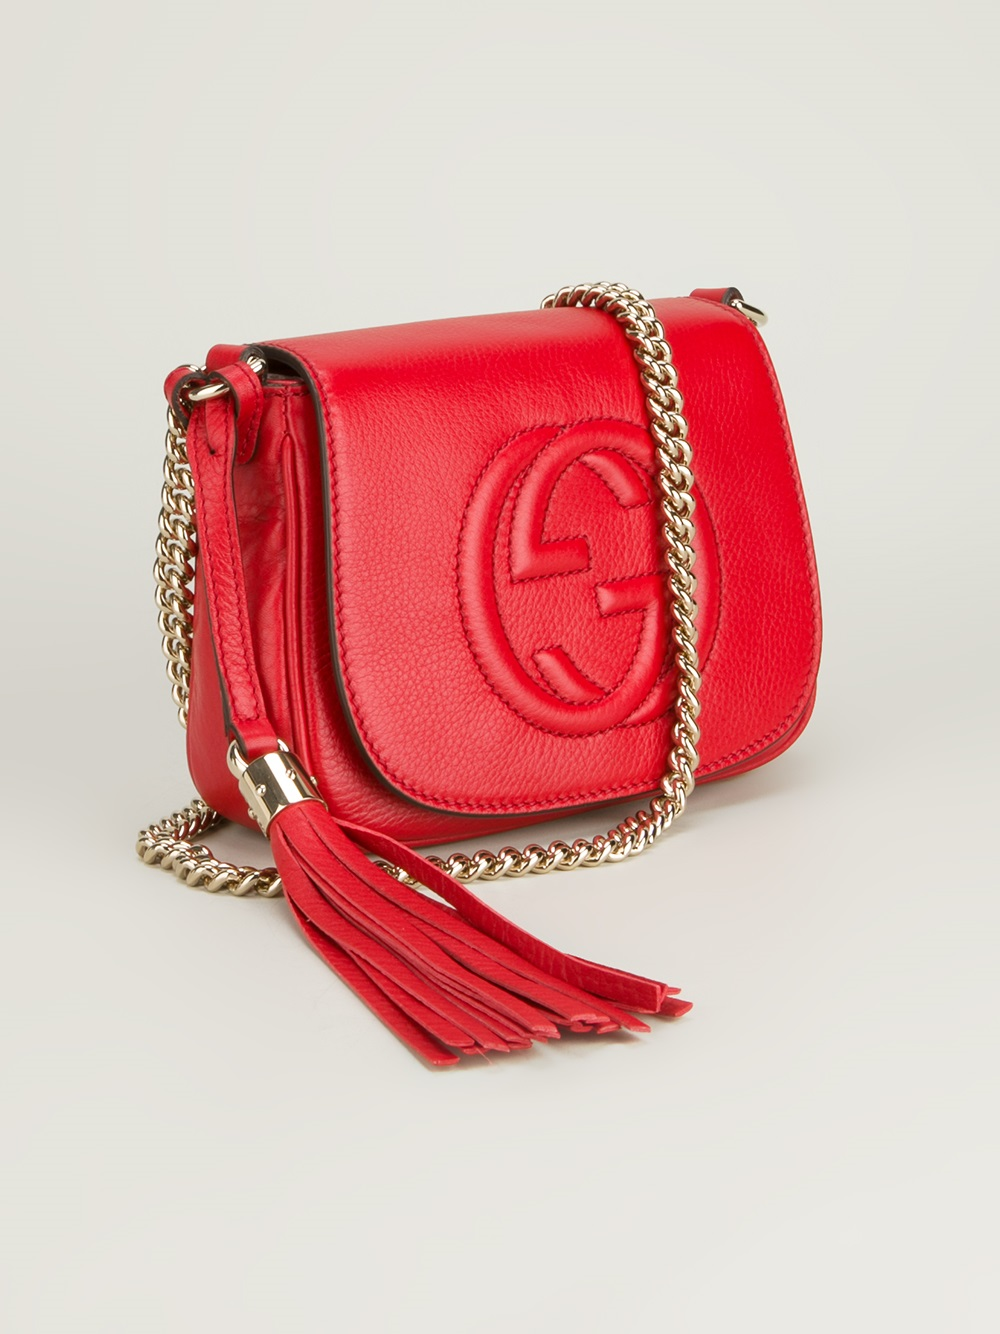 Lyst Gucci Soho Leather Shoulder Bag In Red